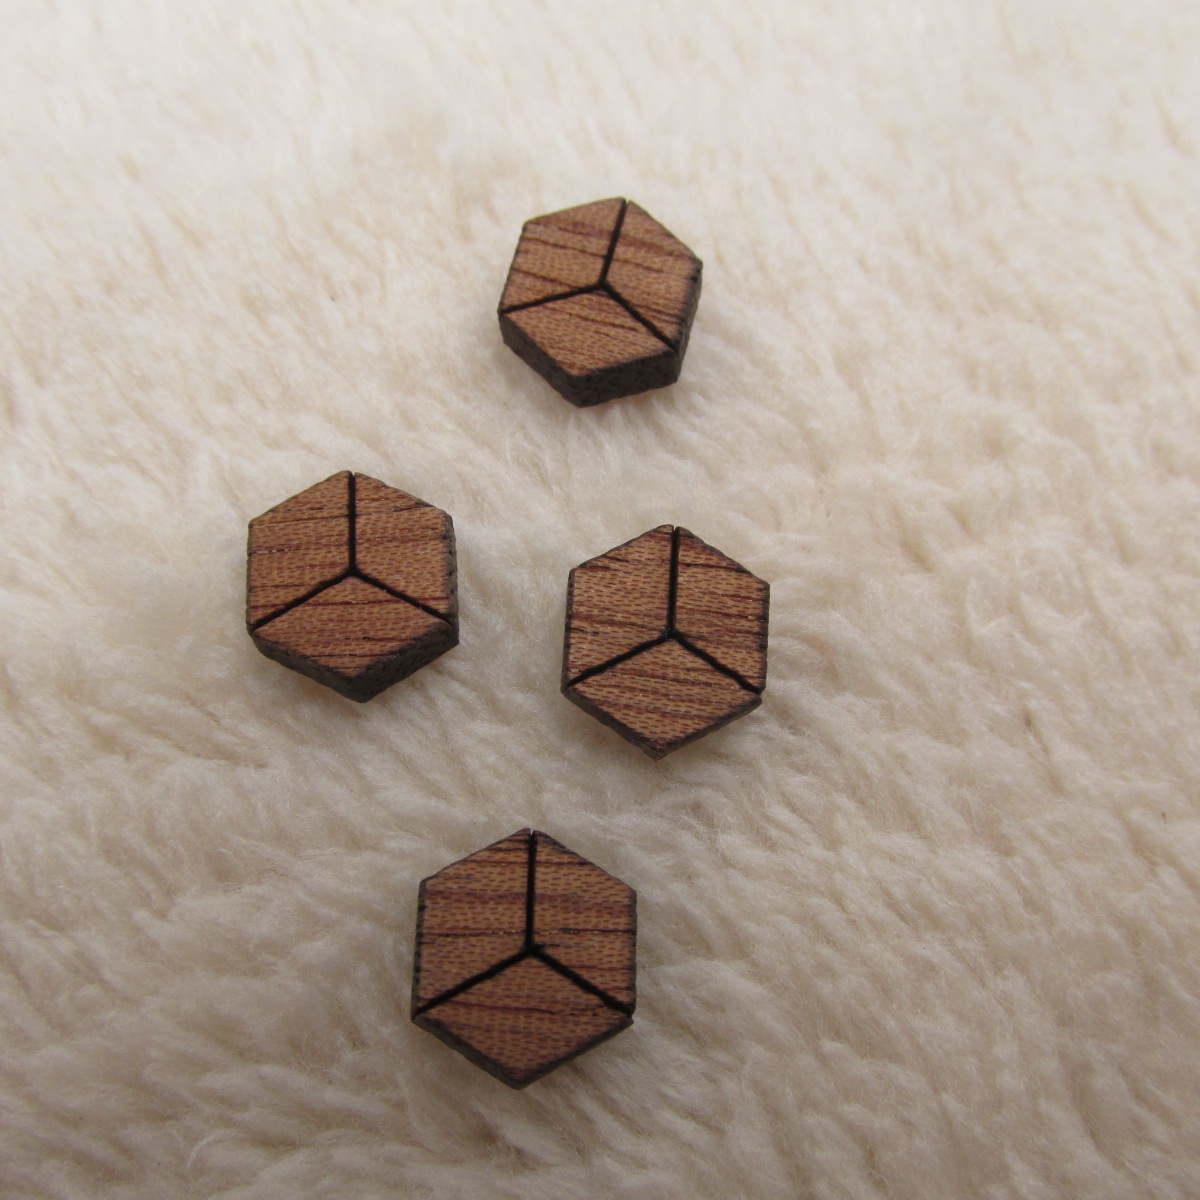 Long Hollow Hexagon Shape Wood Jewelry- Wood Shapes 10 Pieces DIY Unfinished Laser Cut Natural Wood Earrings Blanks 2 12 inch